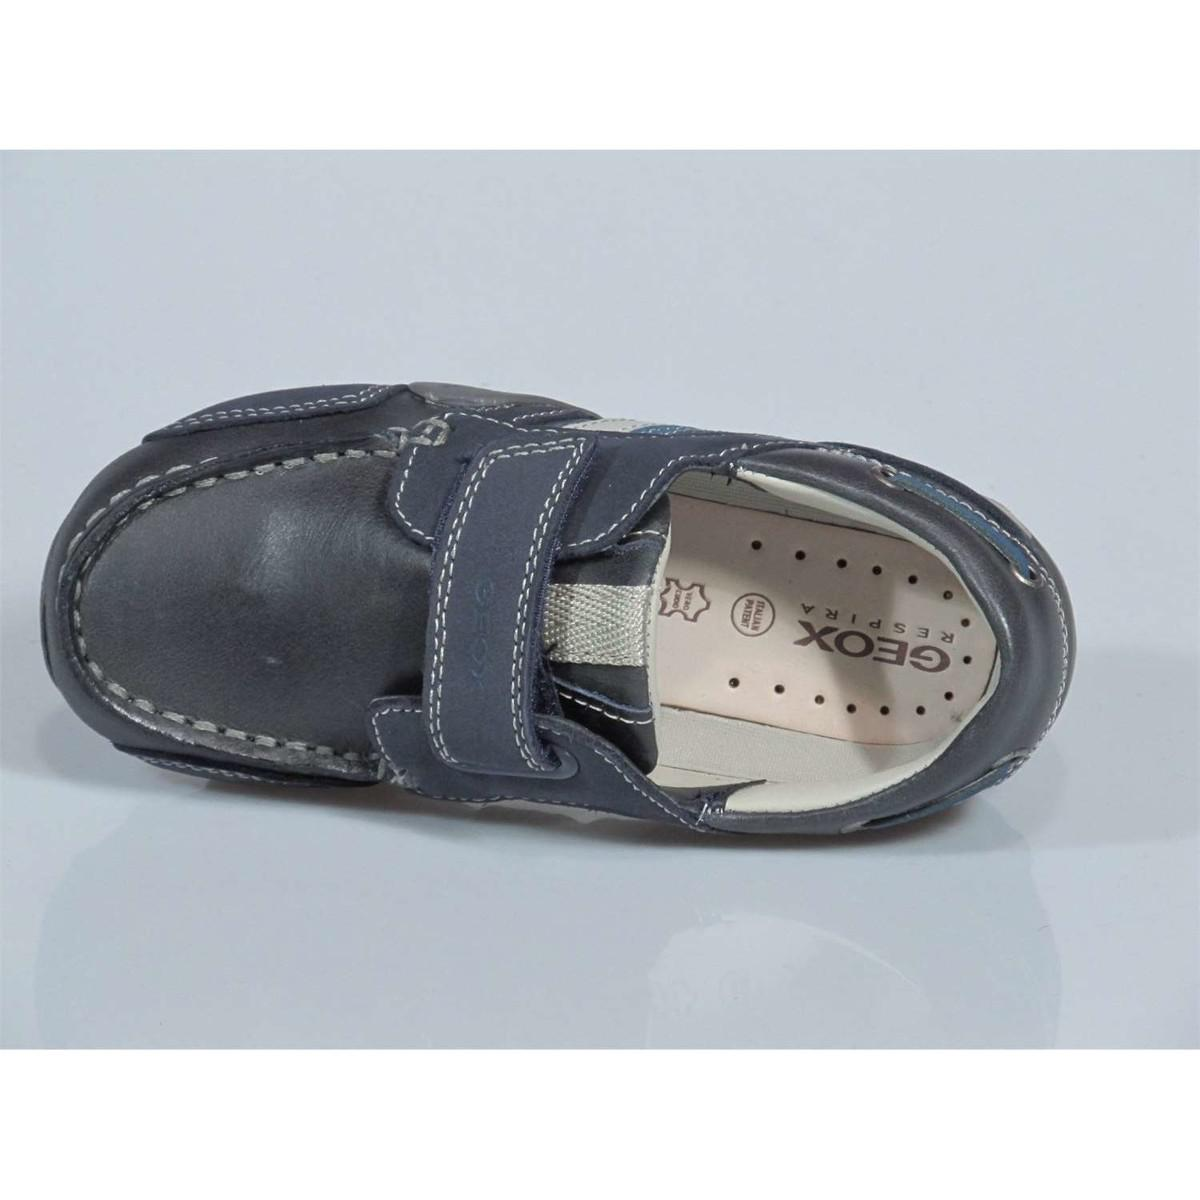 Geox B3216e 04332 C0700 Mocassins Kid Navy/avio Men's Shoes (trainers) In Blue for Men